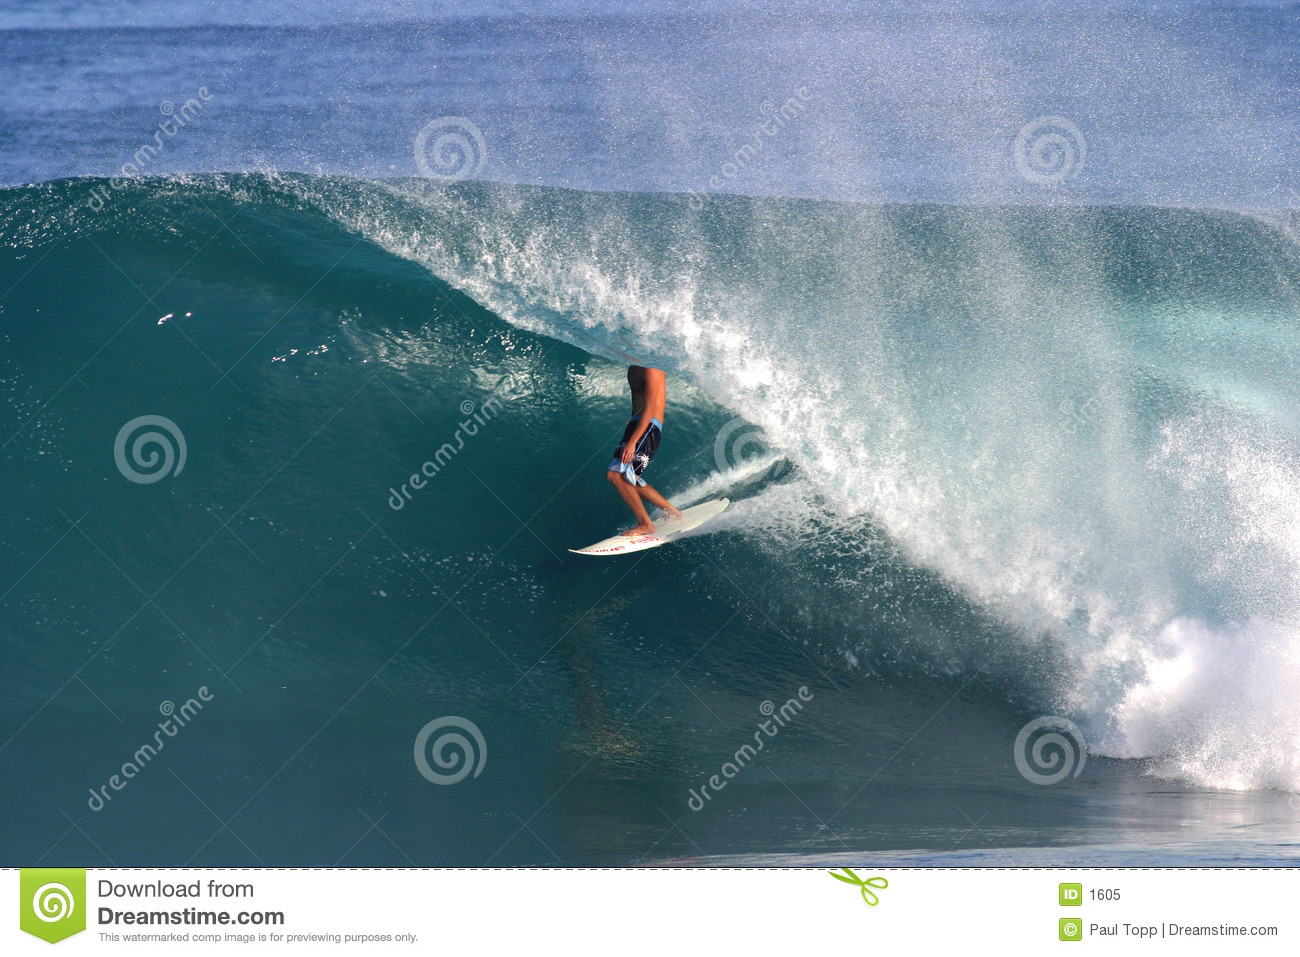 Backdoor que practica surf